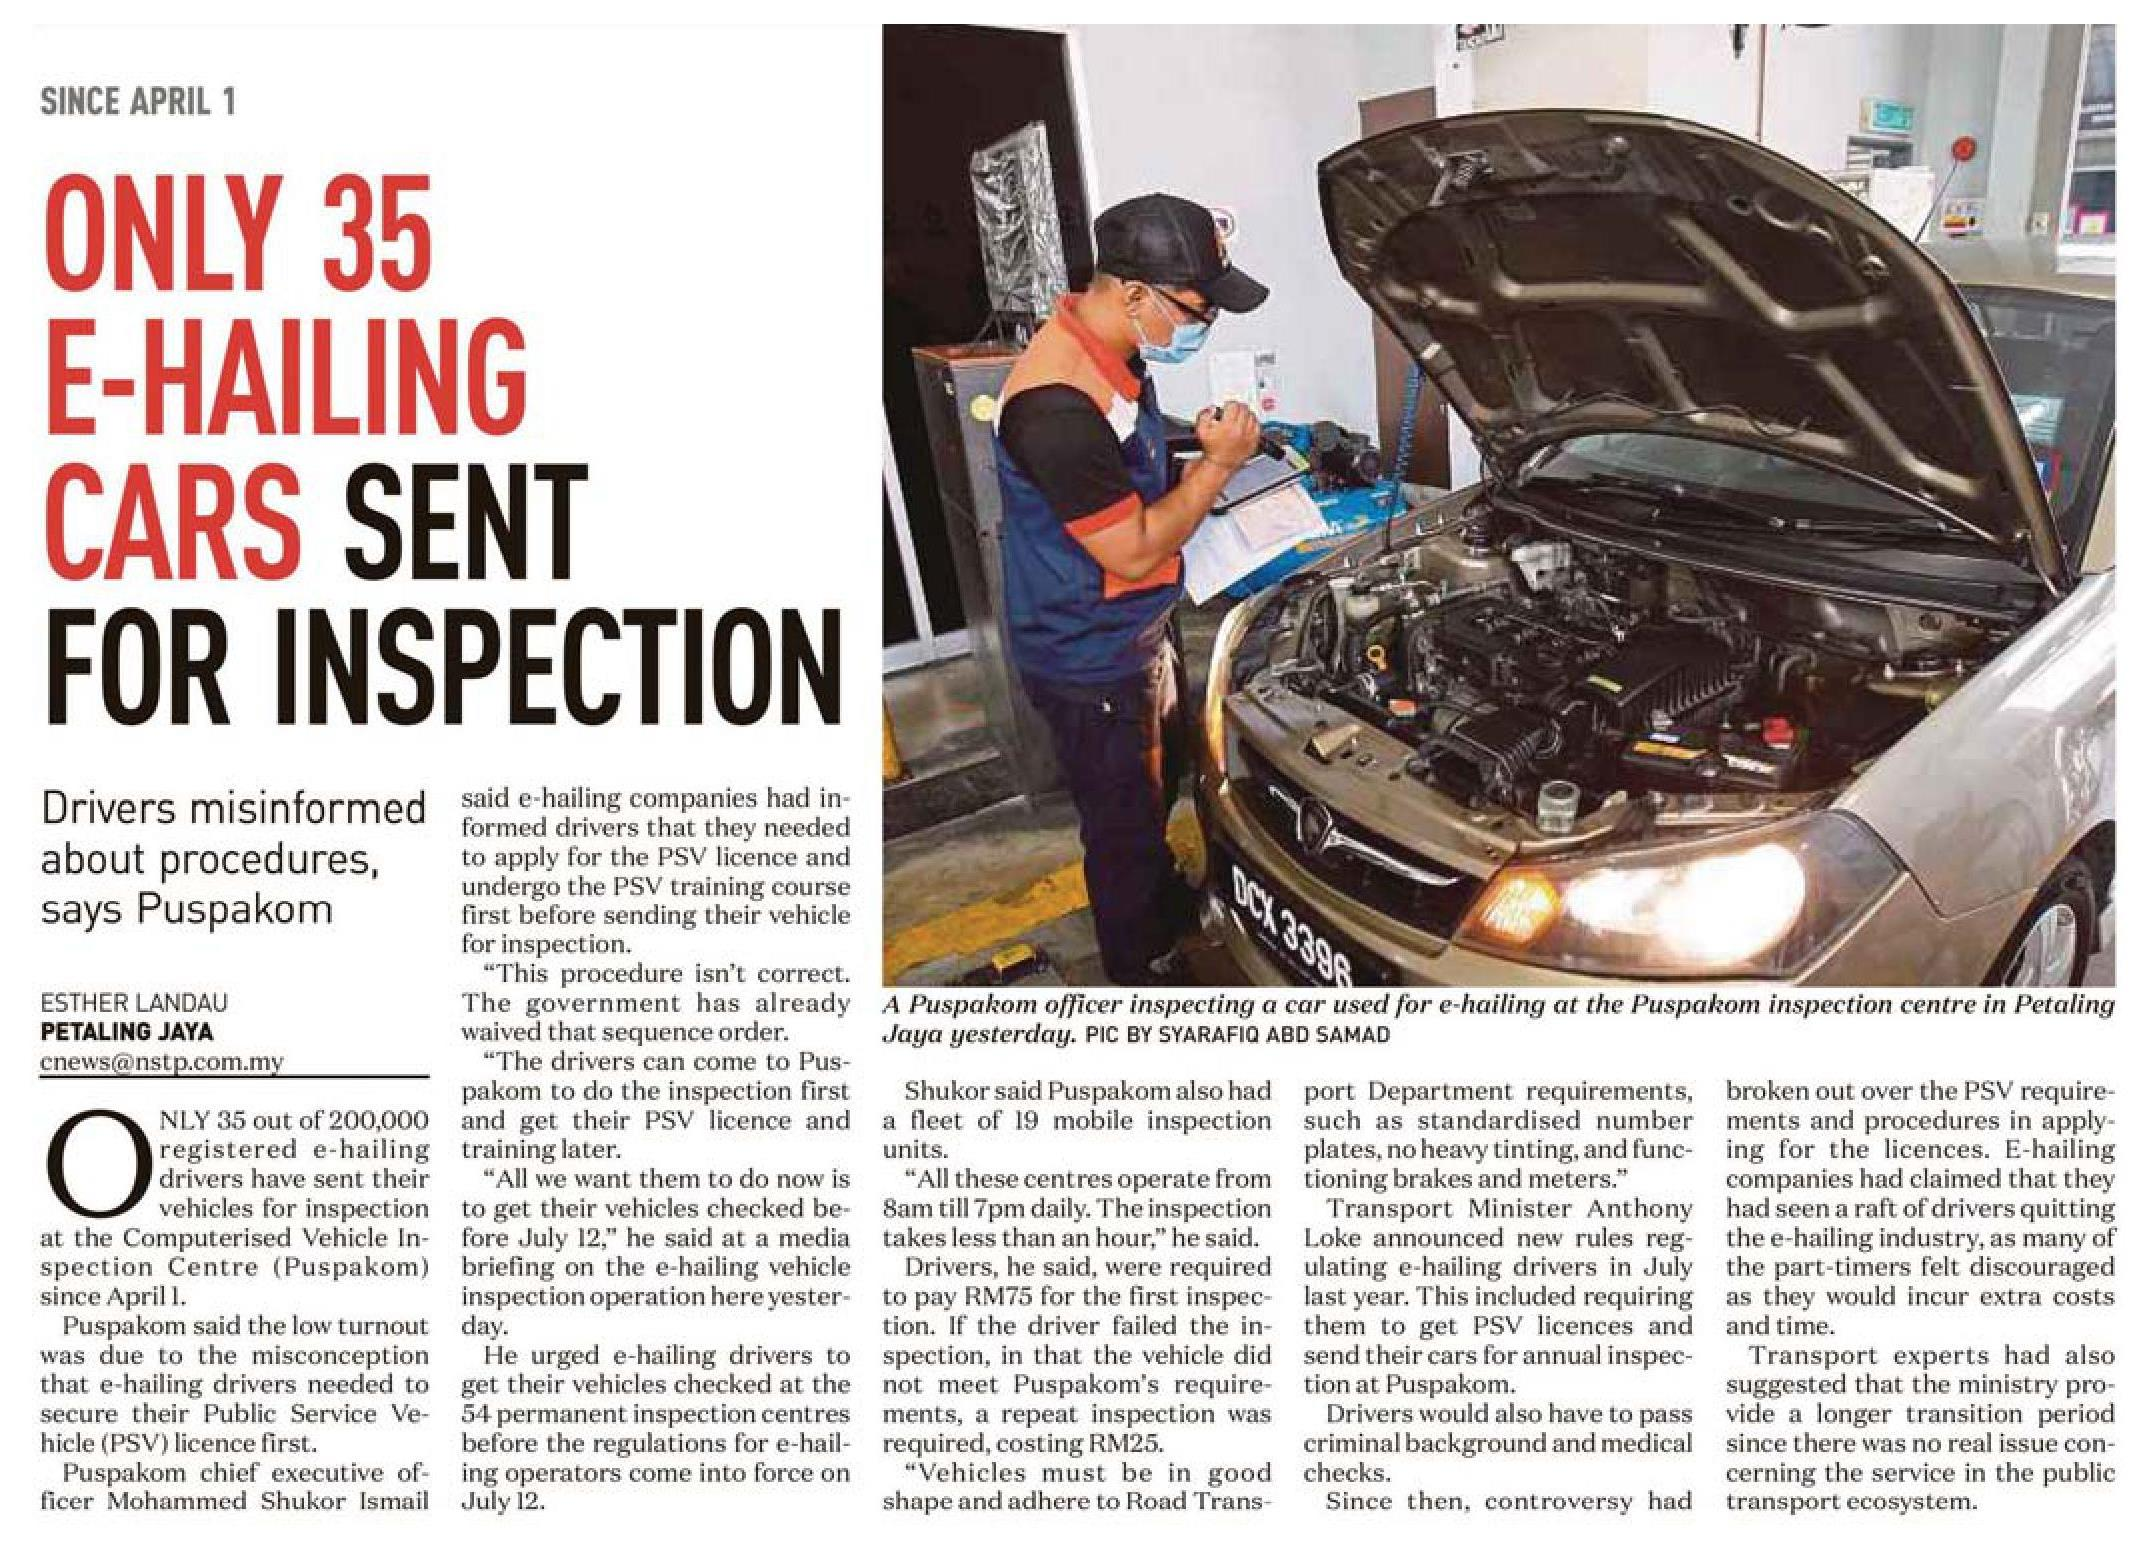 New Straits Times_15.4_Only 35 e-hailing cars sent for inspection